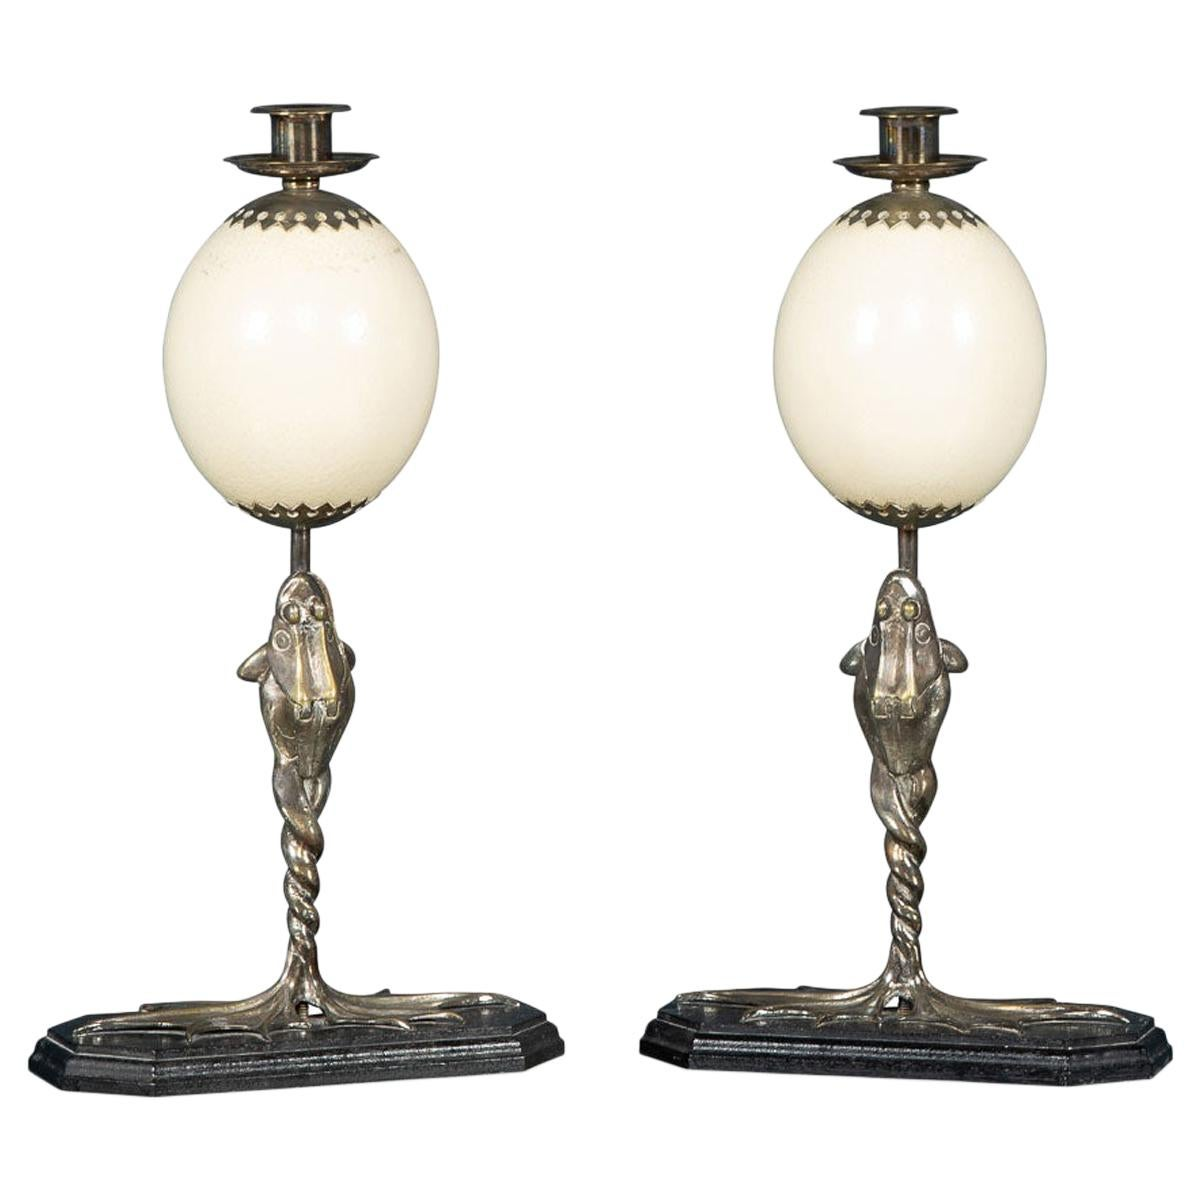 Pair of Candlesticks by Anthony Redmile, London, circa 1970